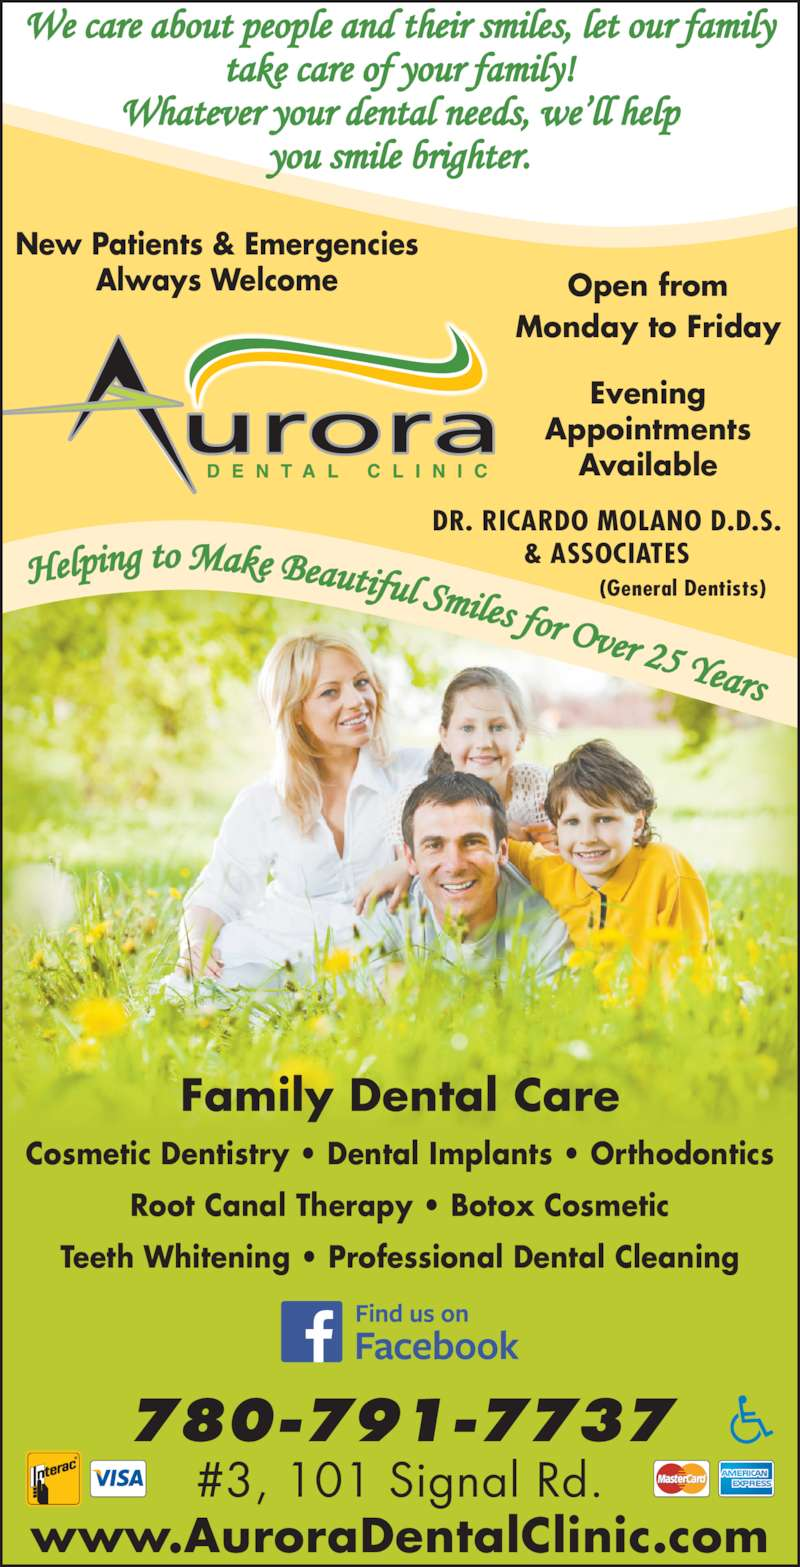 Aurora Dental Clinic (780-791-7737) - Display Ad - Always Welcome Open from Monday to Friday Evening Appointments Available #3, 101 Signal Rd. 780-791-7737 www.AuroraDentalClinic.com Cosmetic Dentistry ? Dental Implants ? Orthodontics Root Canal Therapy ? Botox Cosmetic Teeth Whitening ? Professional Dental Cleaning Family Dental Care DR. RICARDO MOLANO D.D.S. & ASSOCIATES                    (General Dentists) New Patients & Emergencies